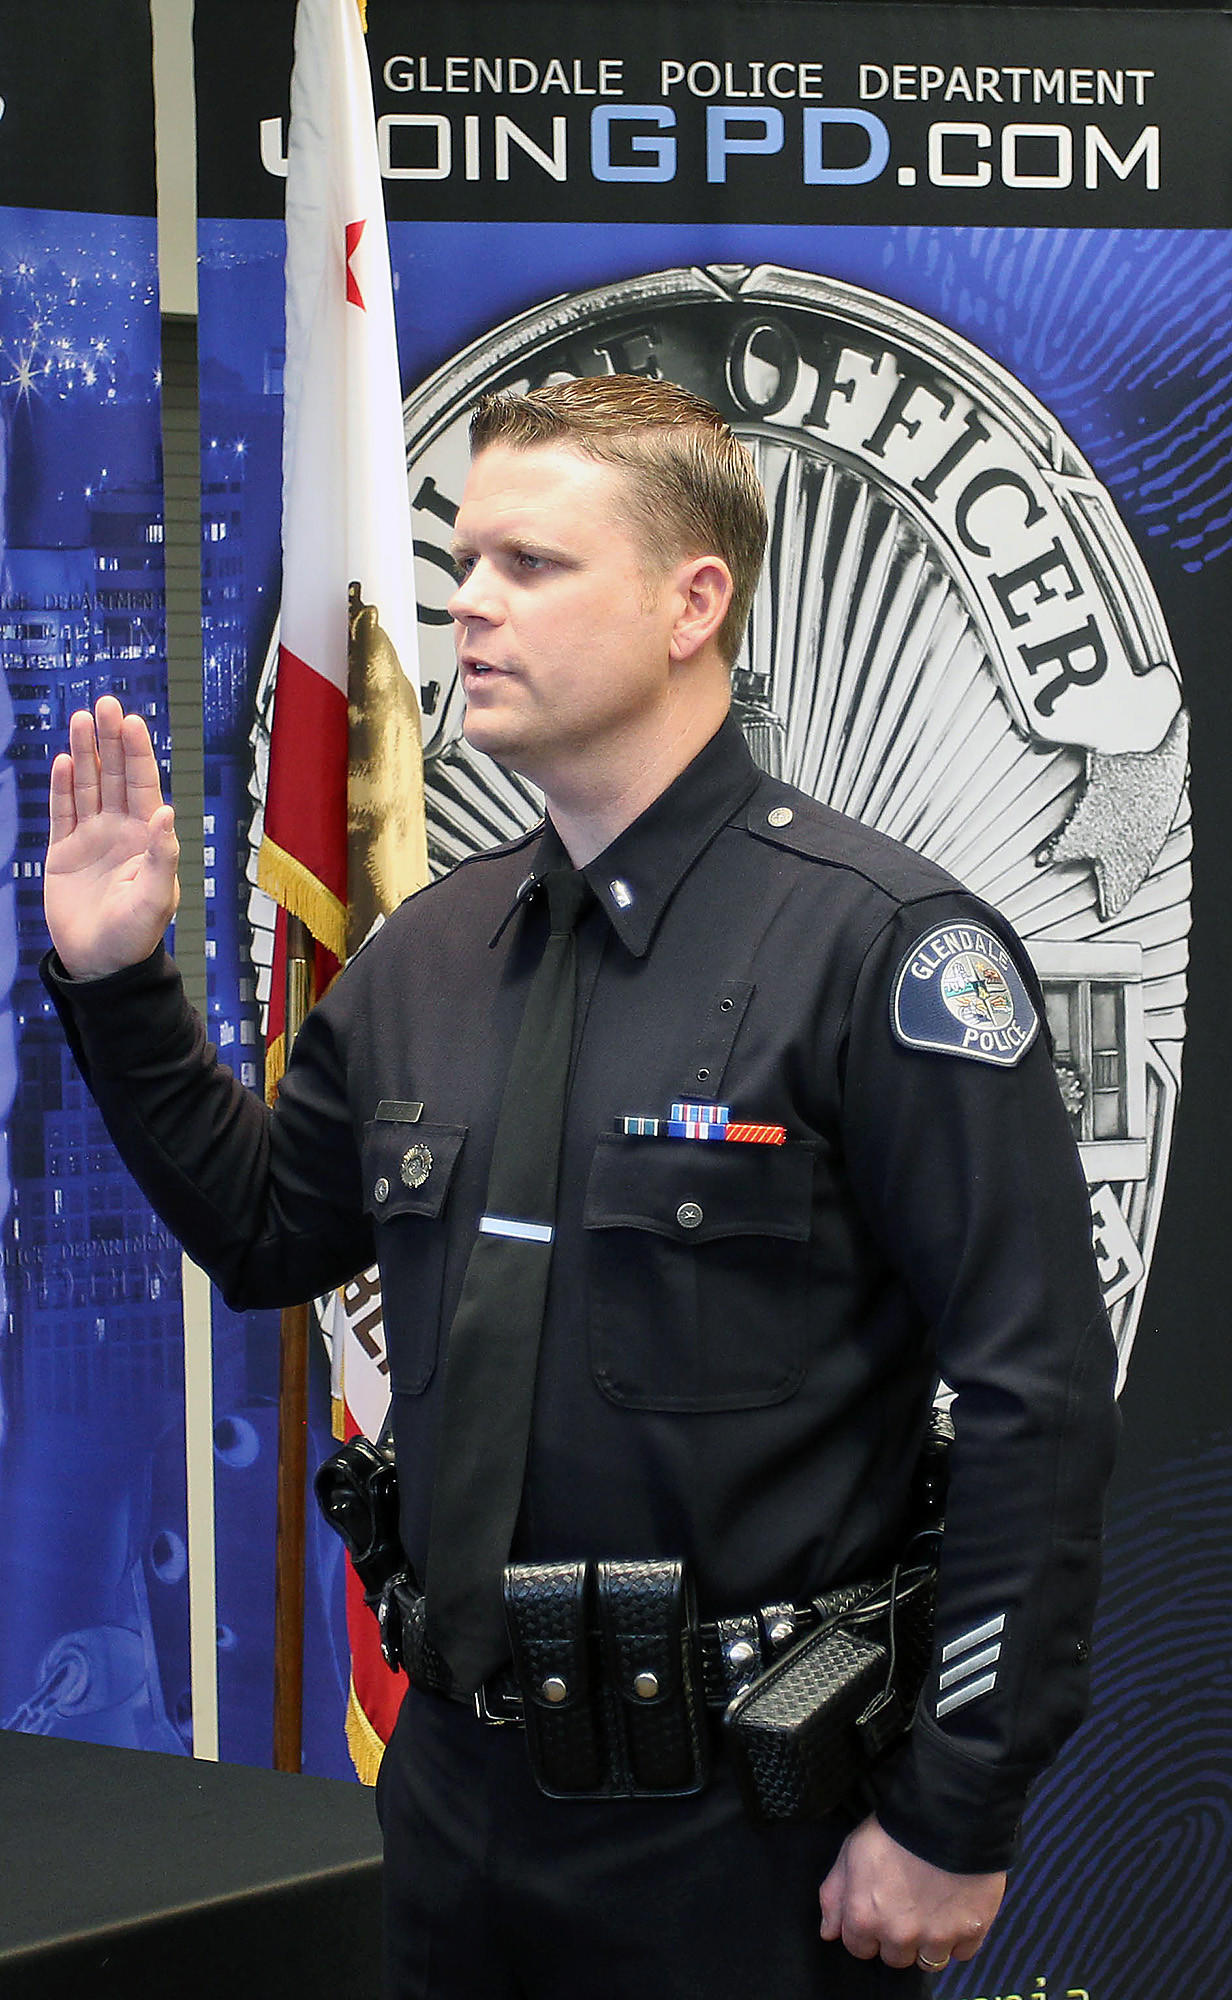 Sgt. Danny Carver was promoted to lieutenant at the Glendale Police Department on Wednesday.